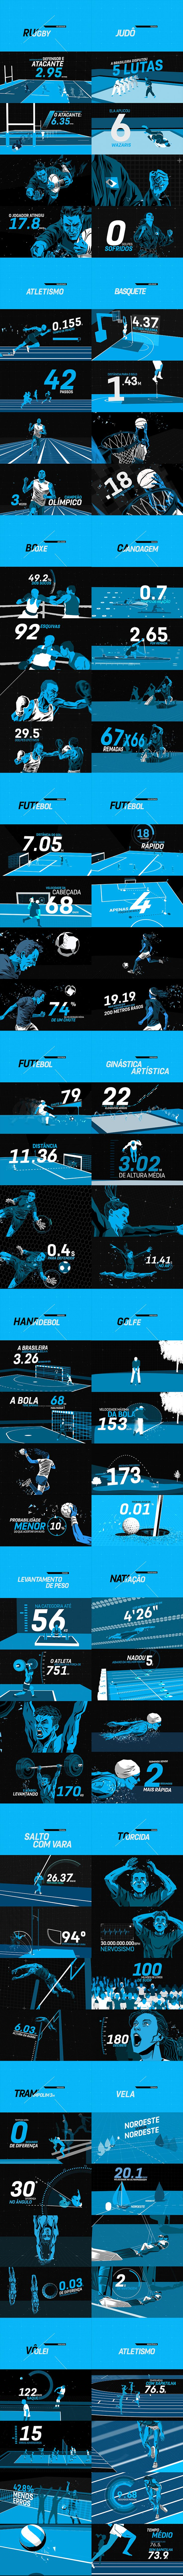 Styleframes, Motion Graphics and illustration. One sport a day stats during the 2016 Olympics for Powerade and ESPN Sportcenter. By Vetor Zero/Lobo